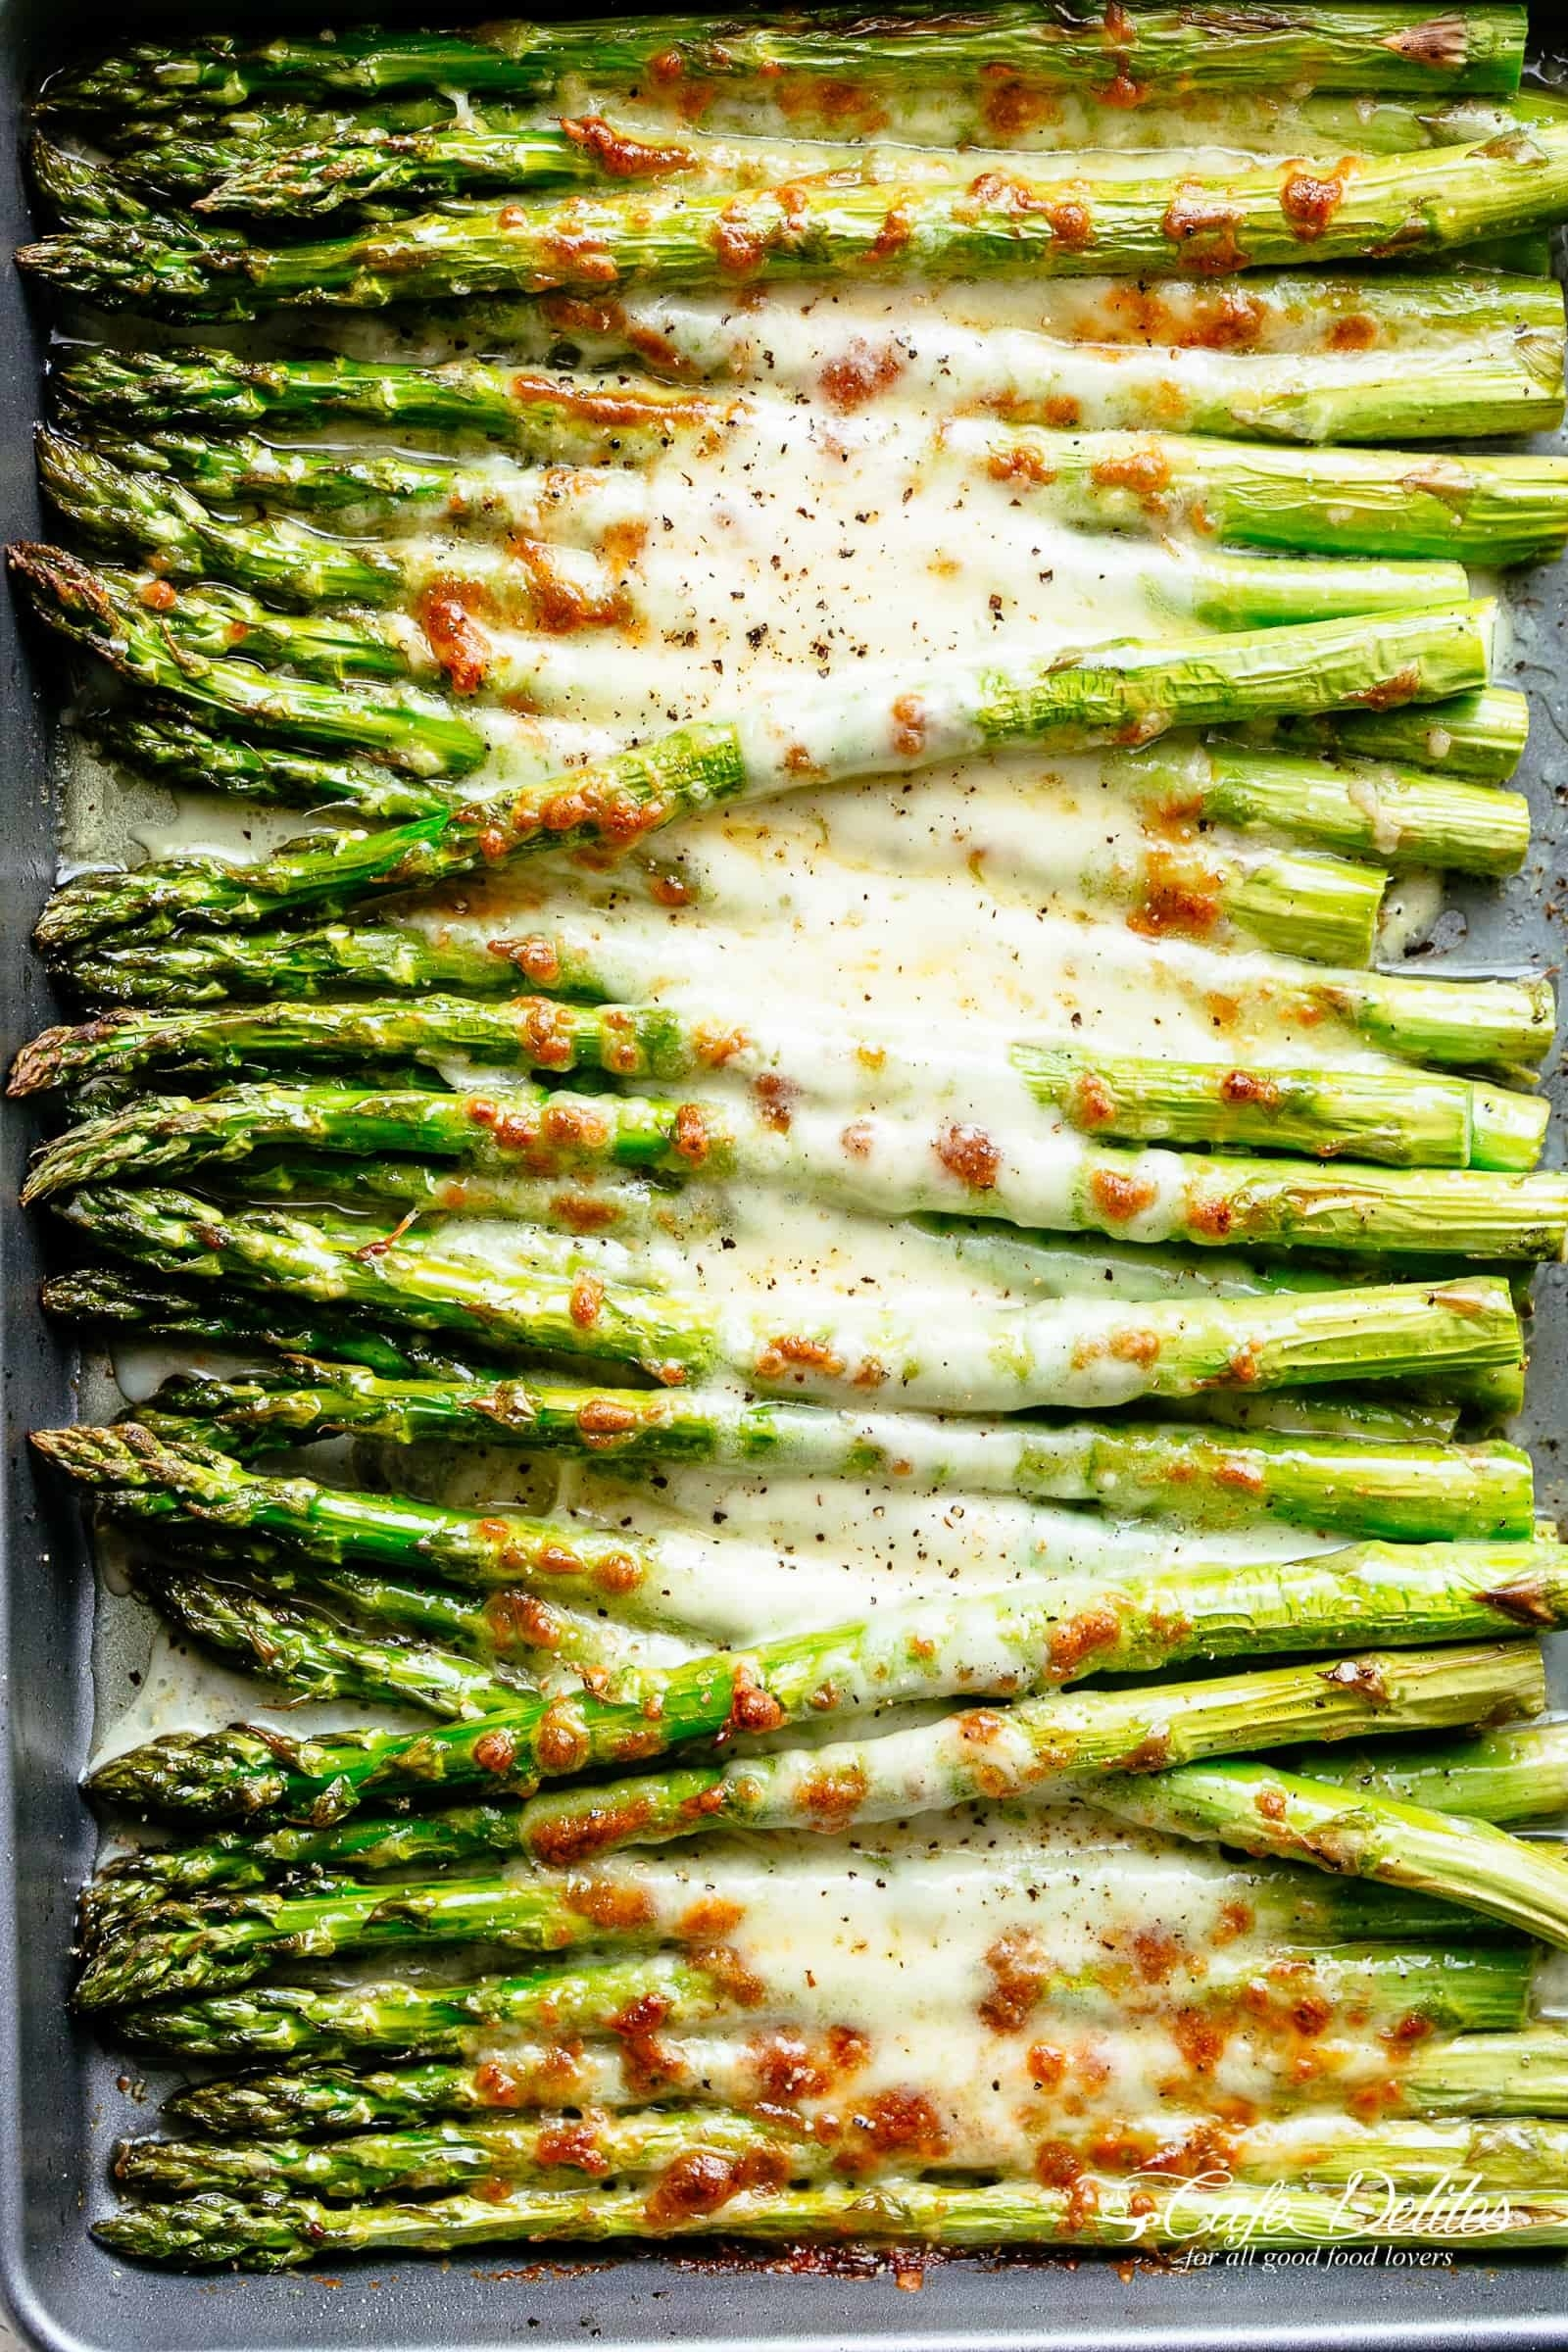 Make use of the first-of-the-season asparagus popping up in markets and make this cheesy asparagus bake that even asparagus haters will love. Get the recipe.